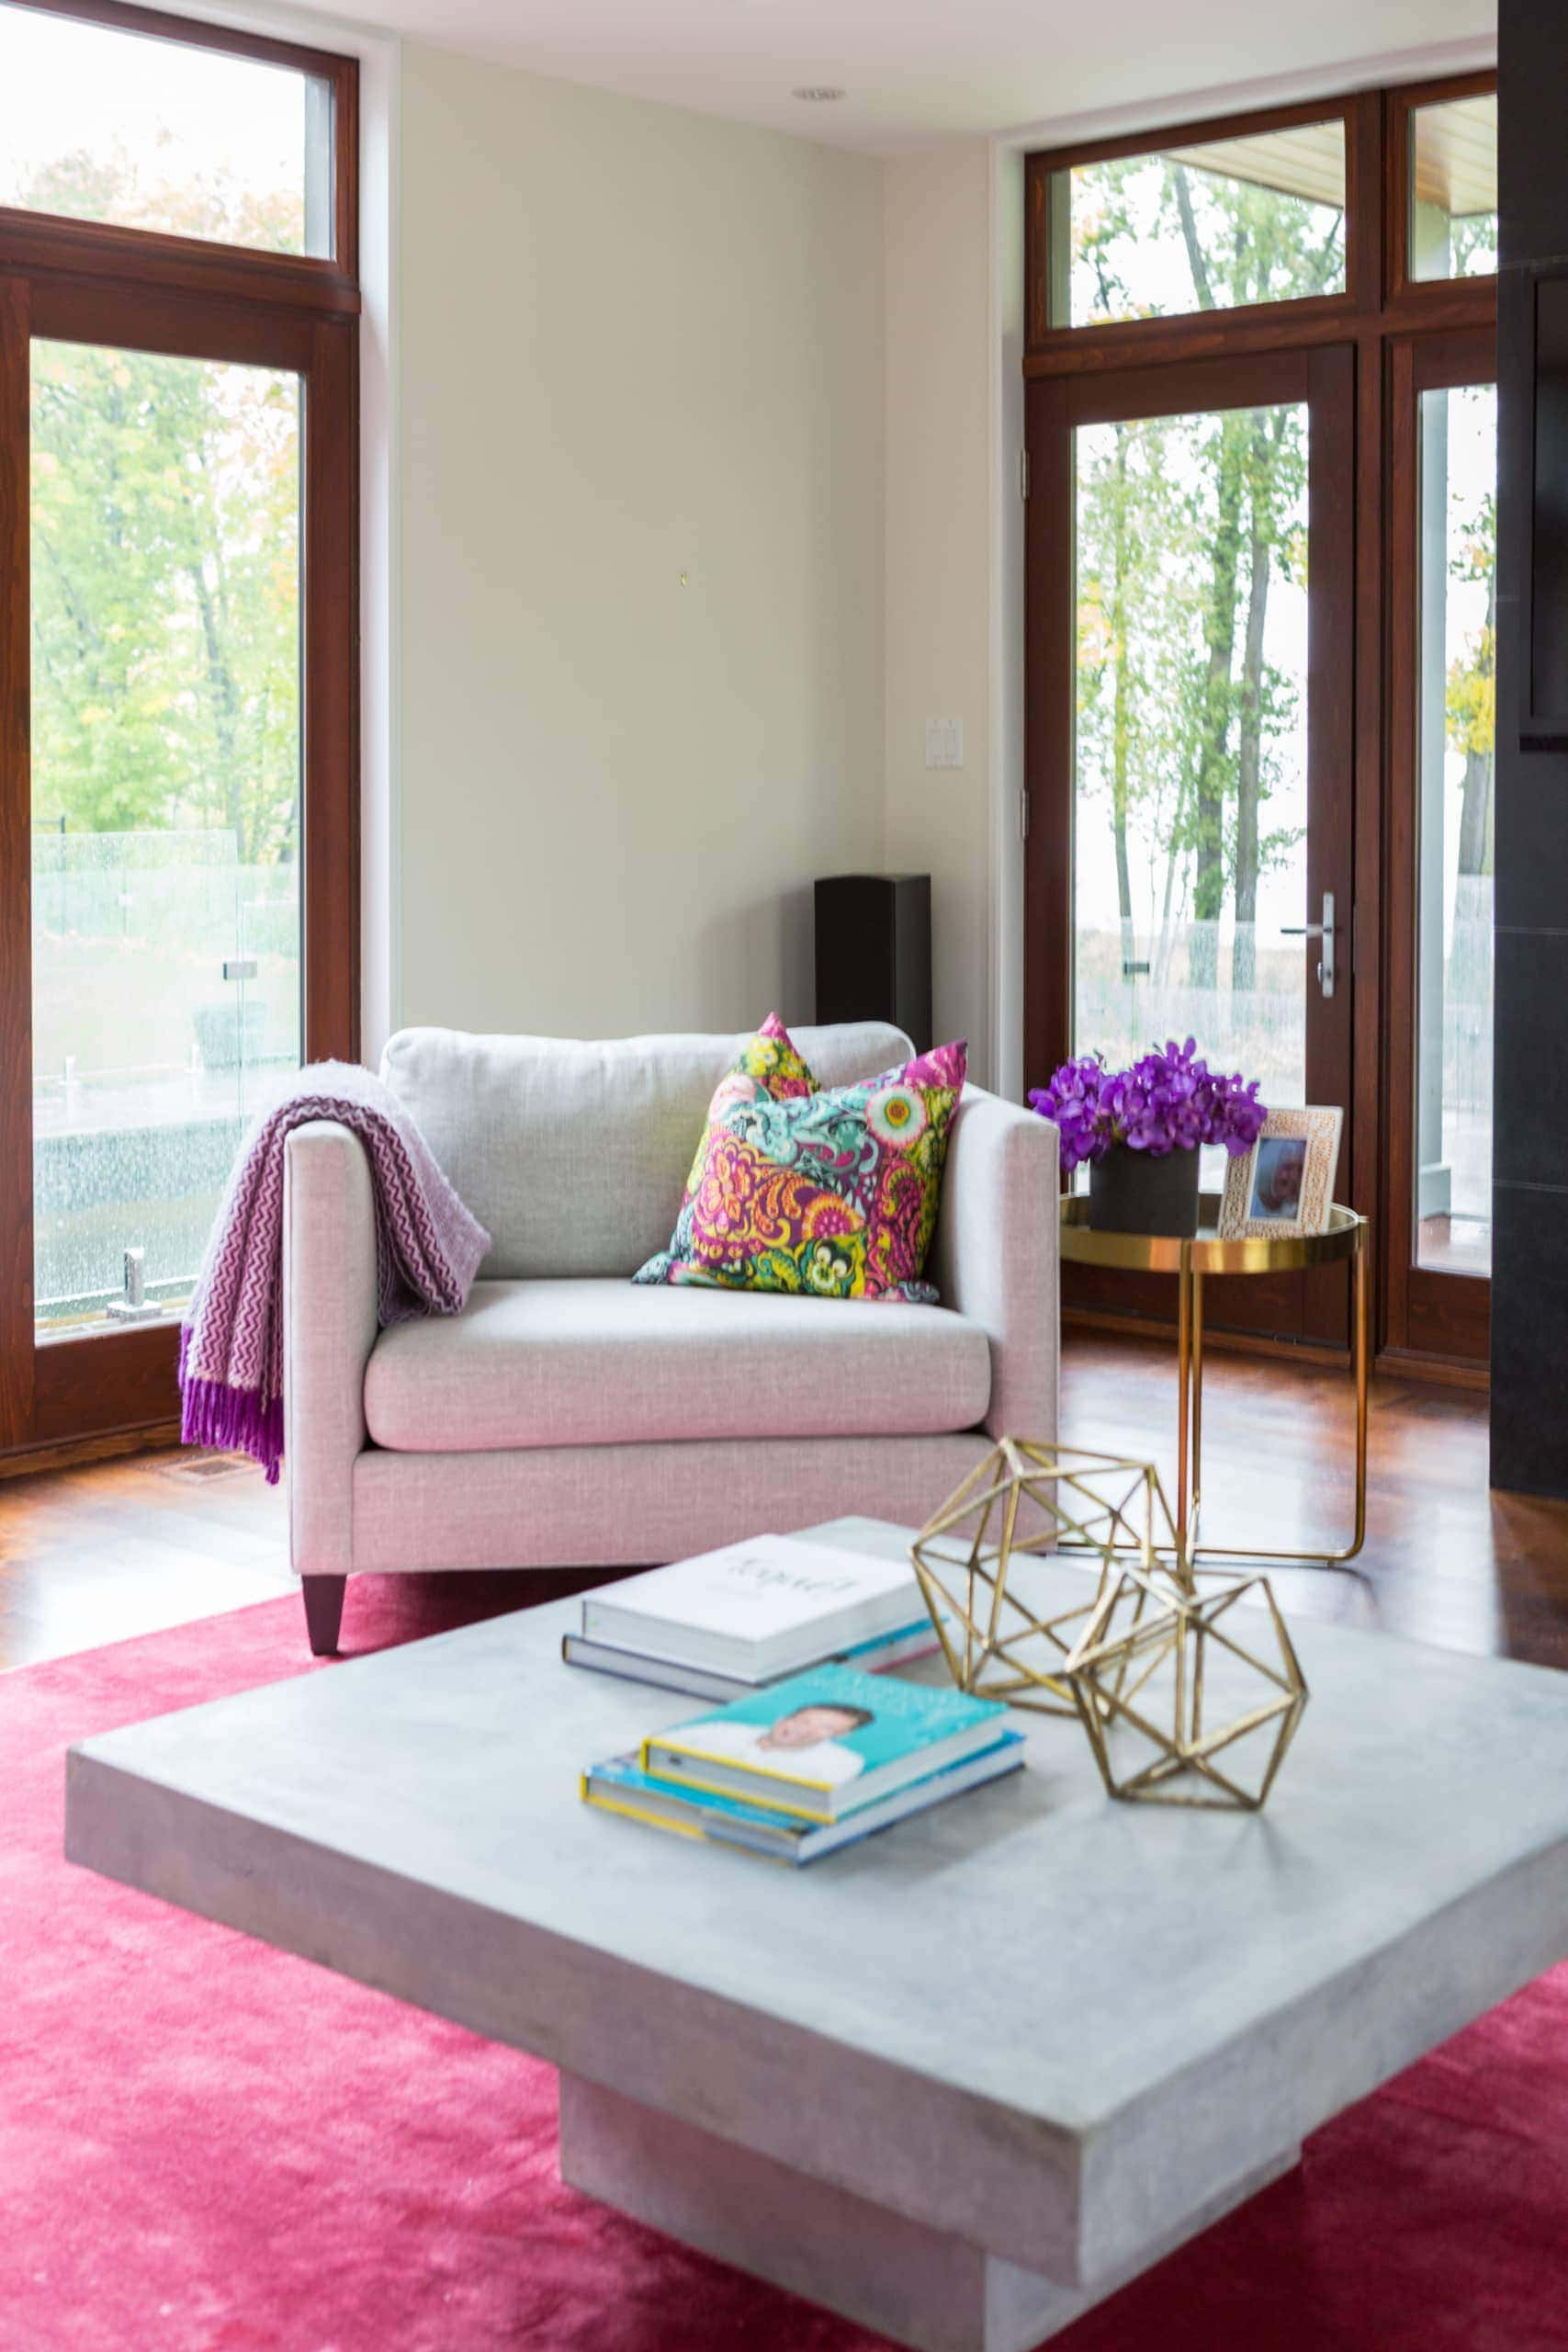 Living room with a pink carpet